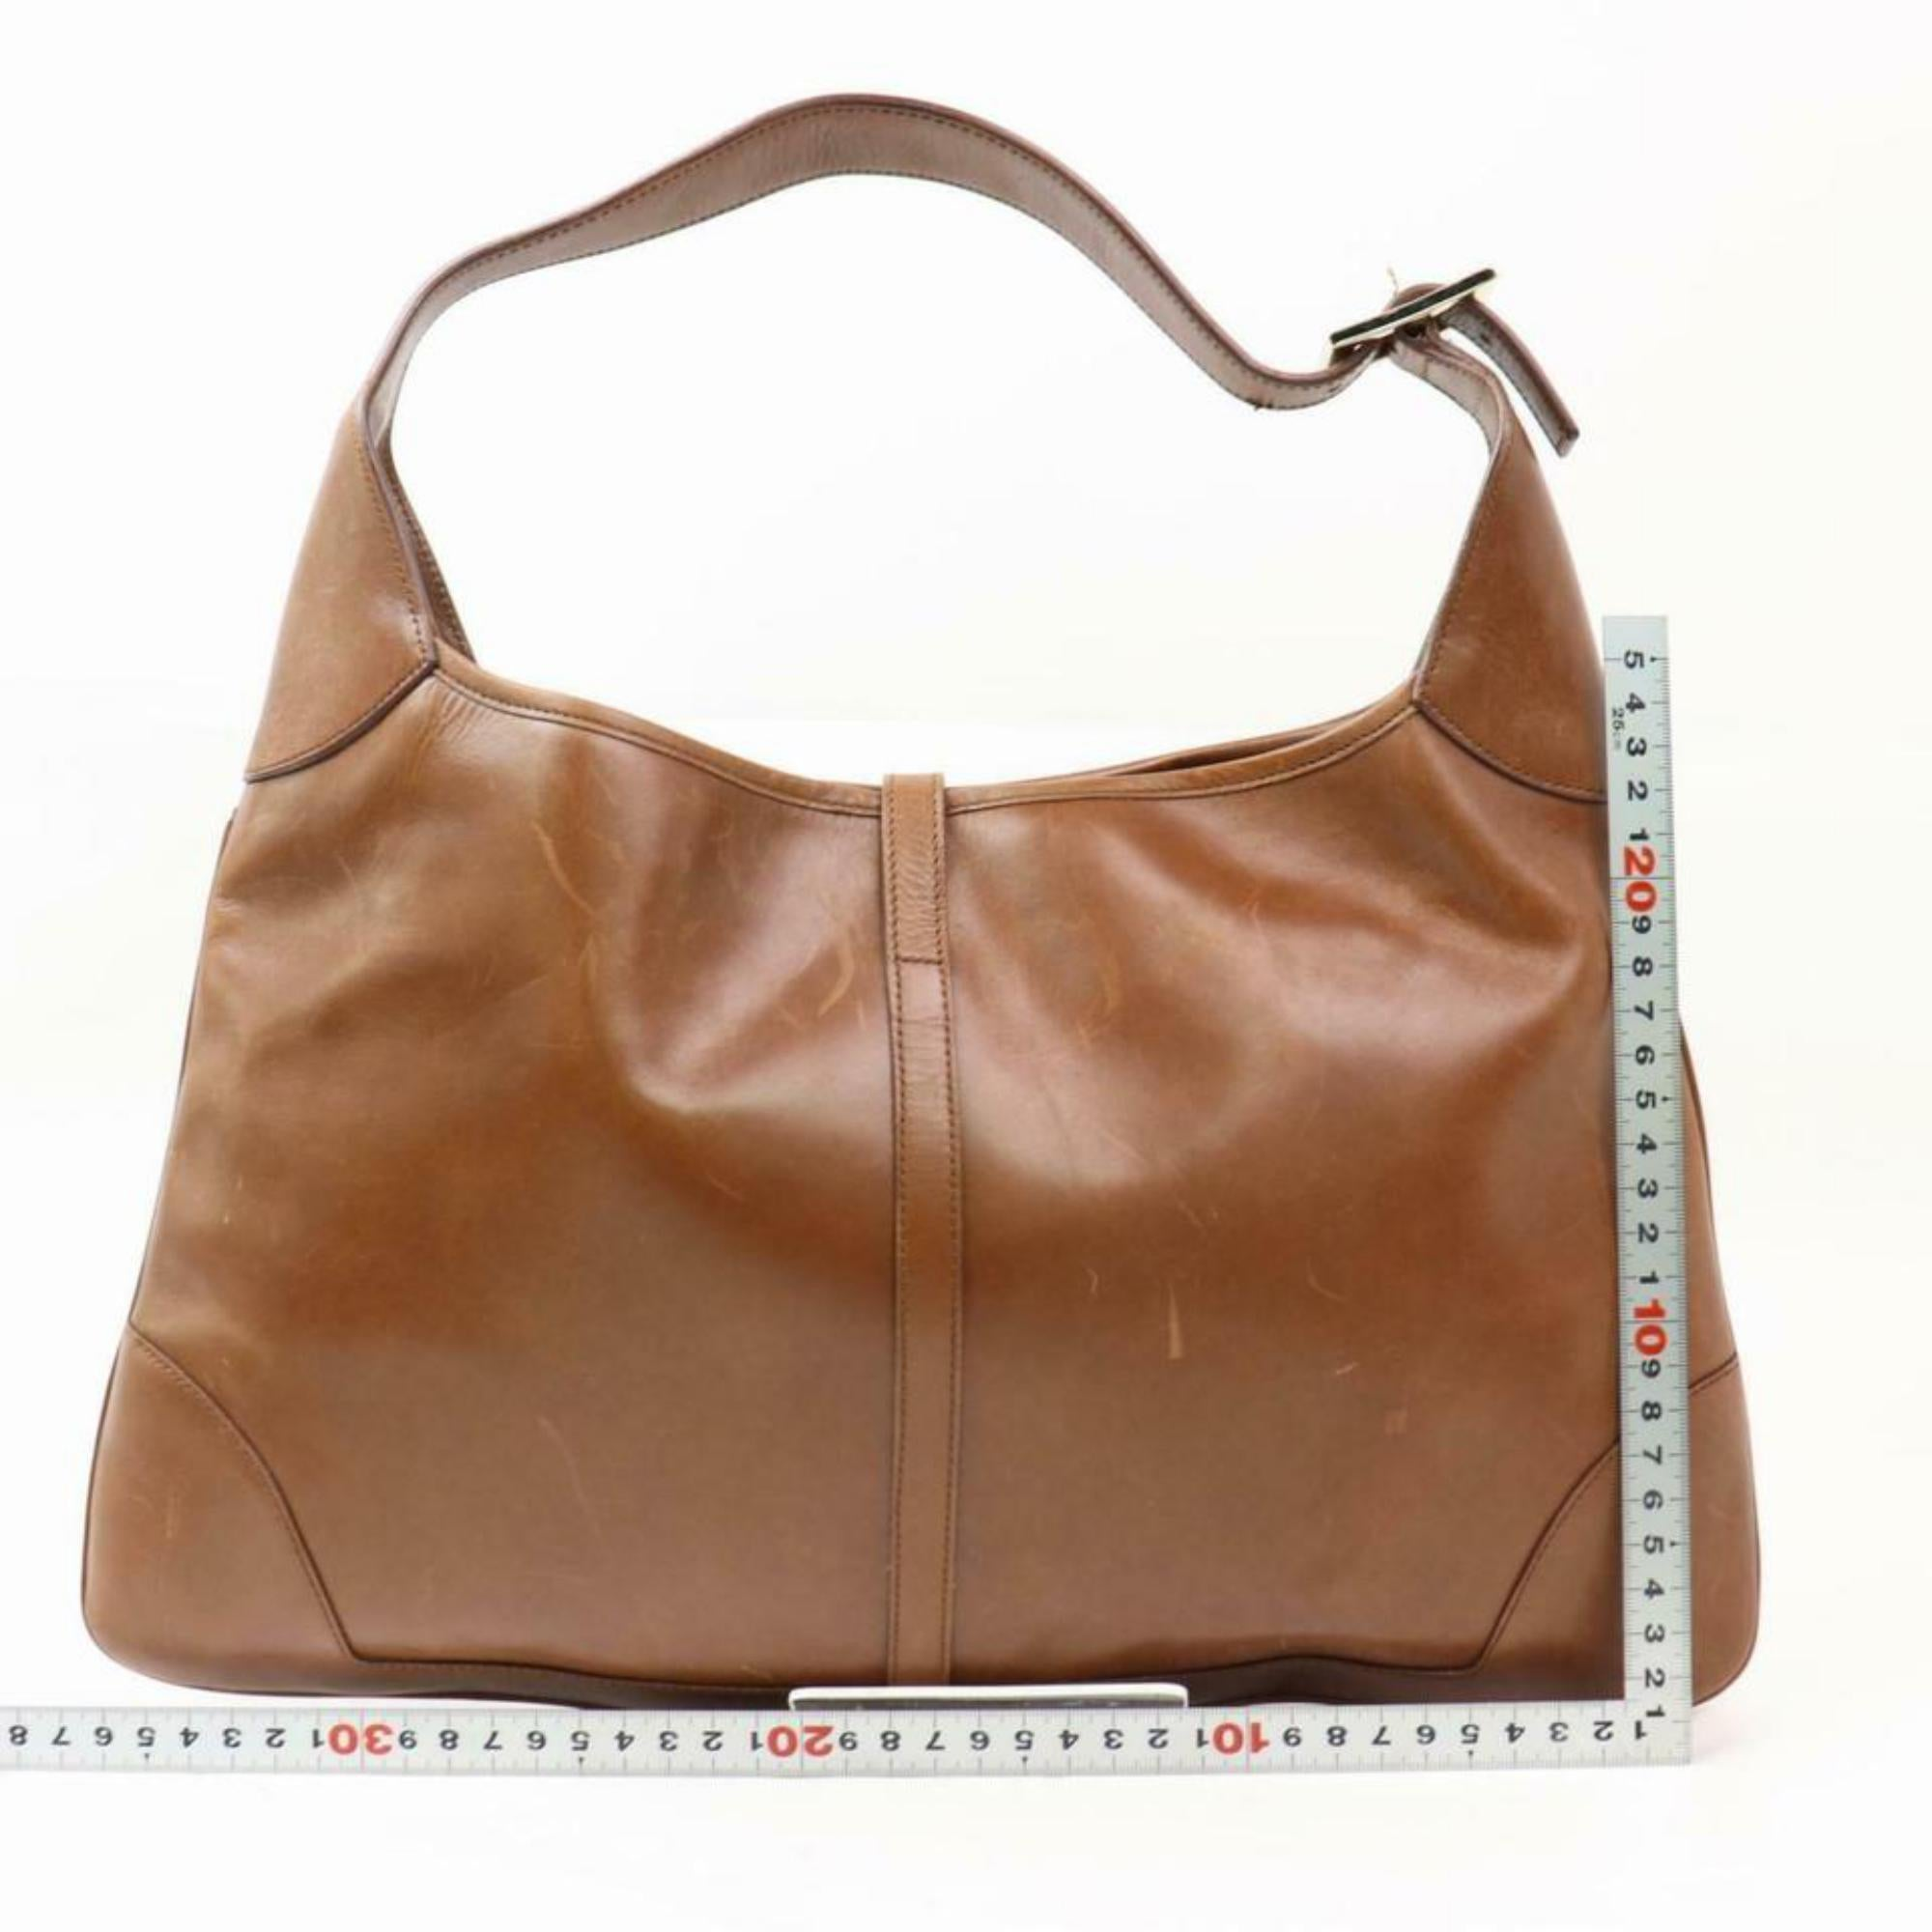 8702c8a68e05 Gucci Jackie Bardot Sherry Web Hobo 870277 Brown Leather Shoulder Bag For  Sale at 1stdibs